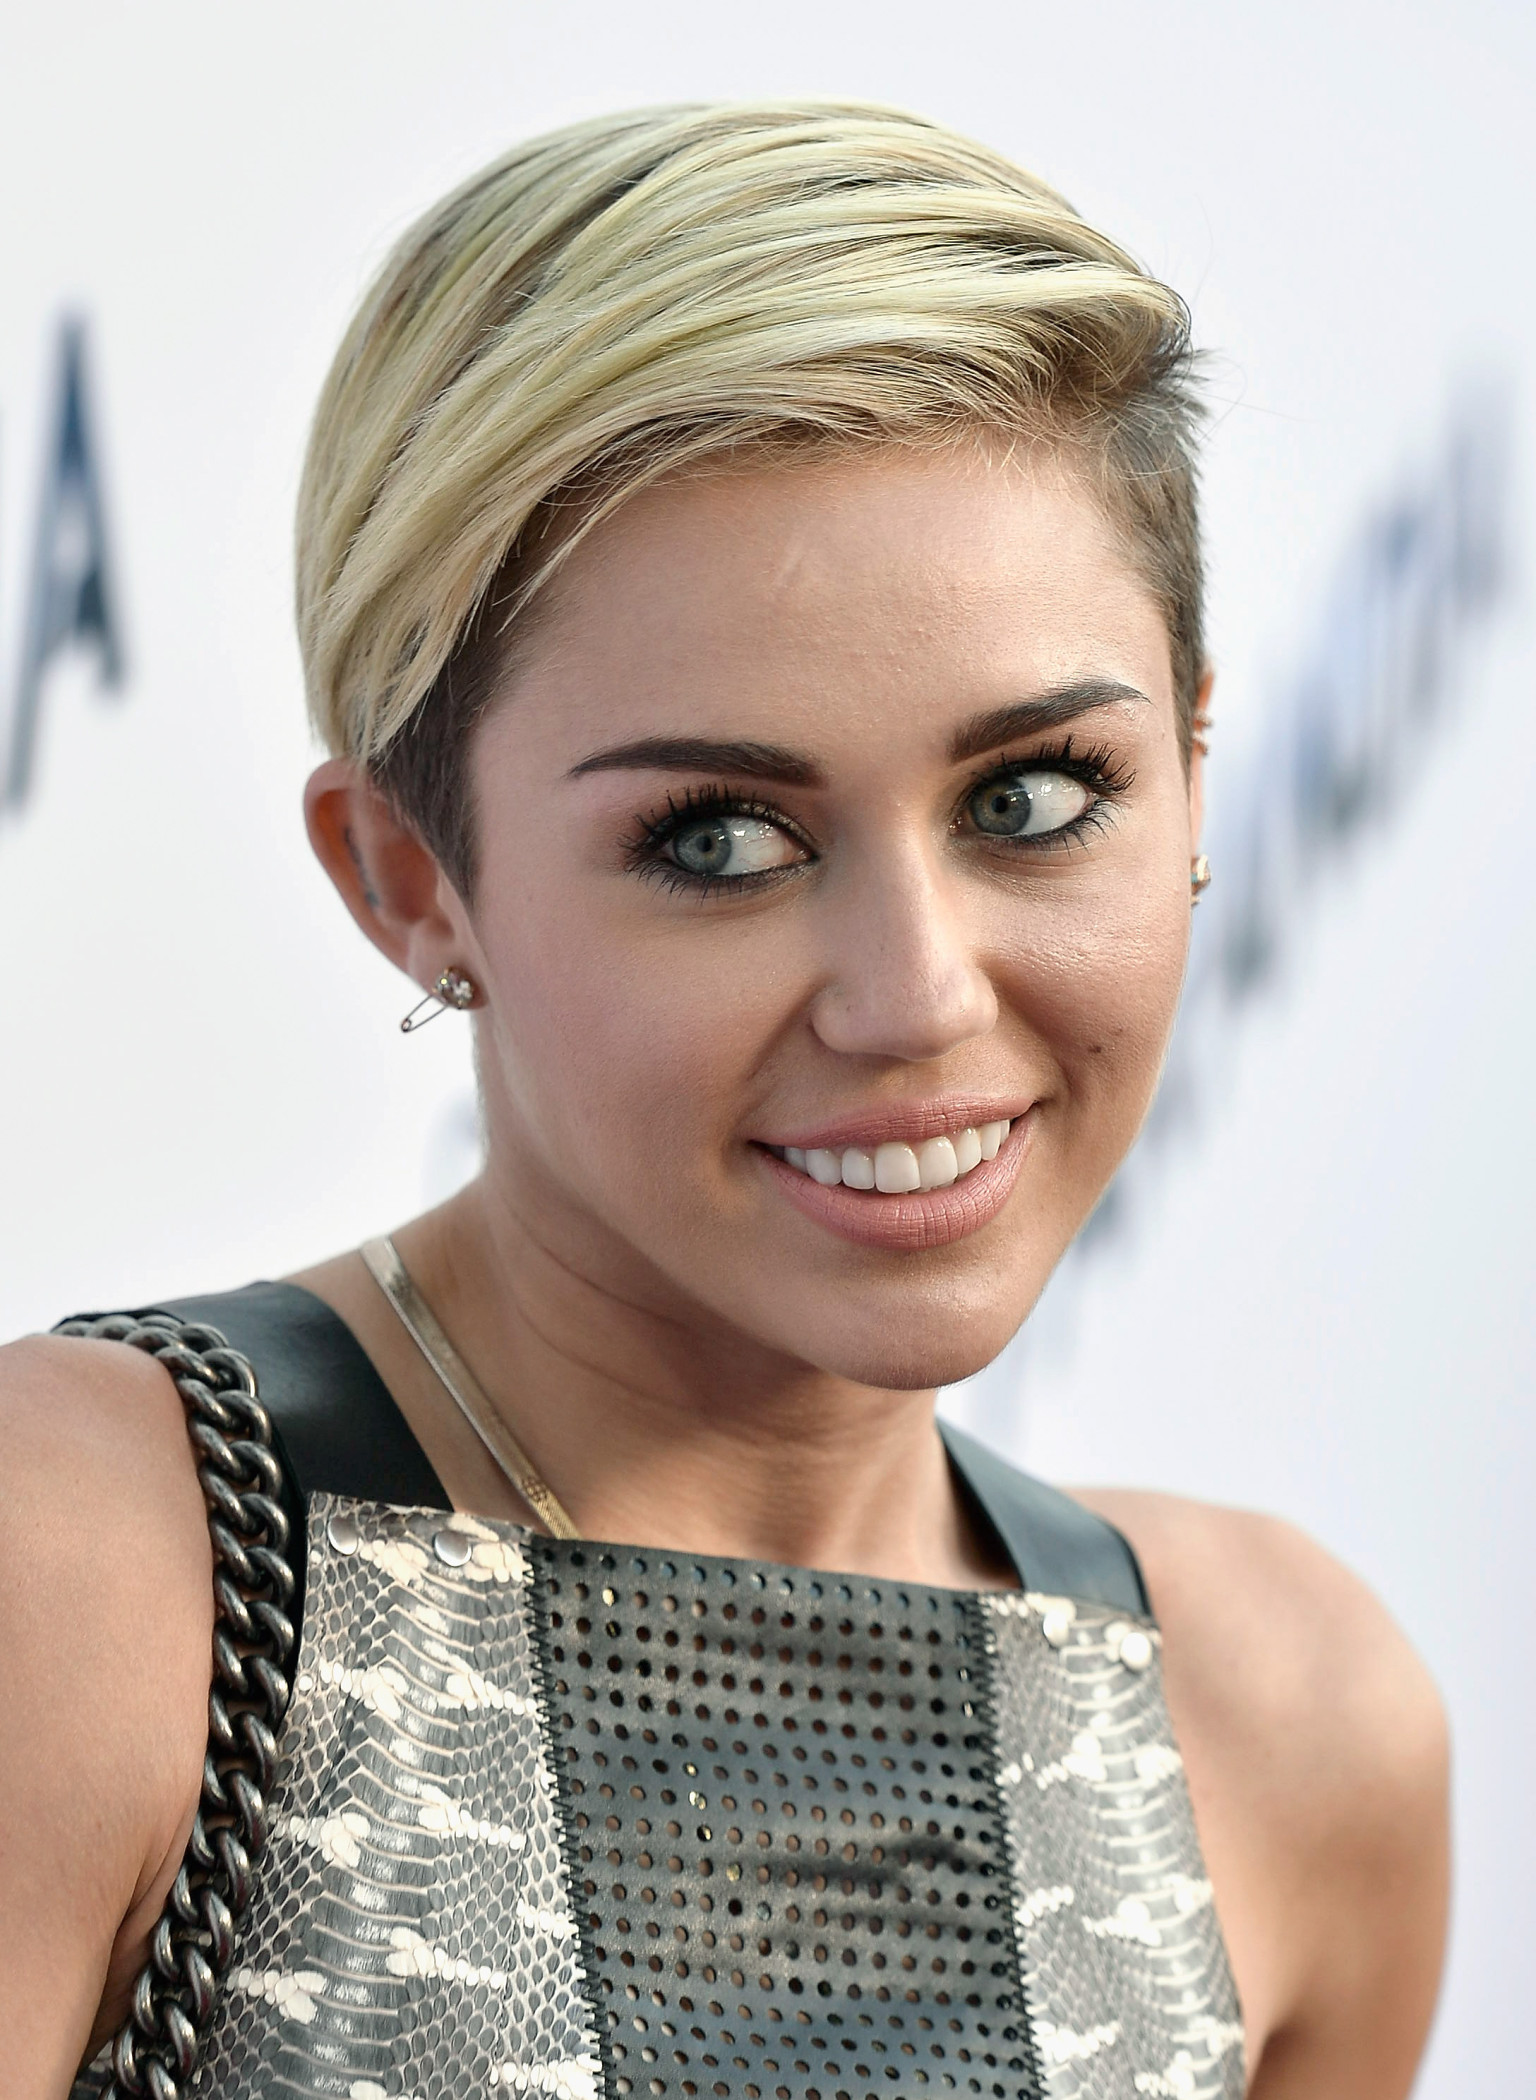 miley cyrus on her short hair im breaking this stereotype